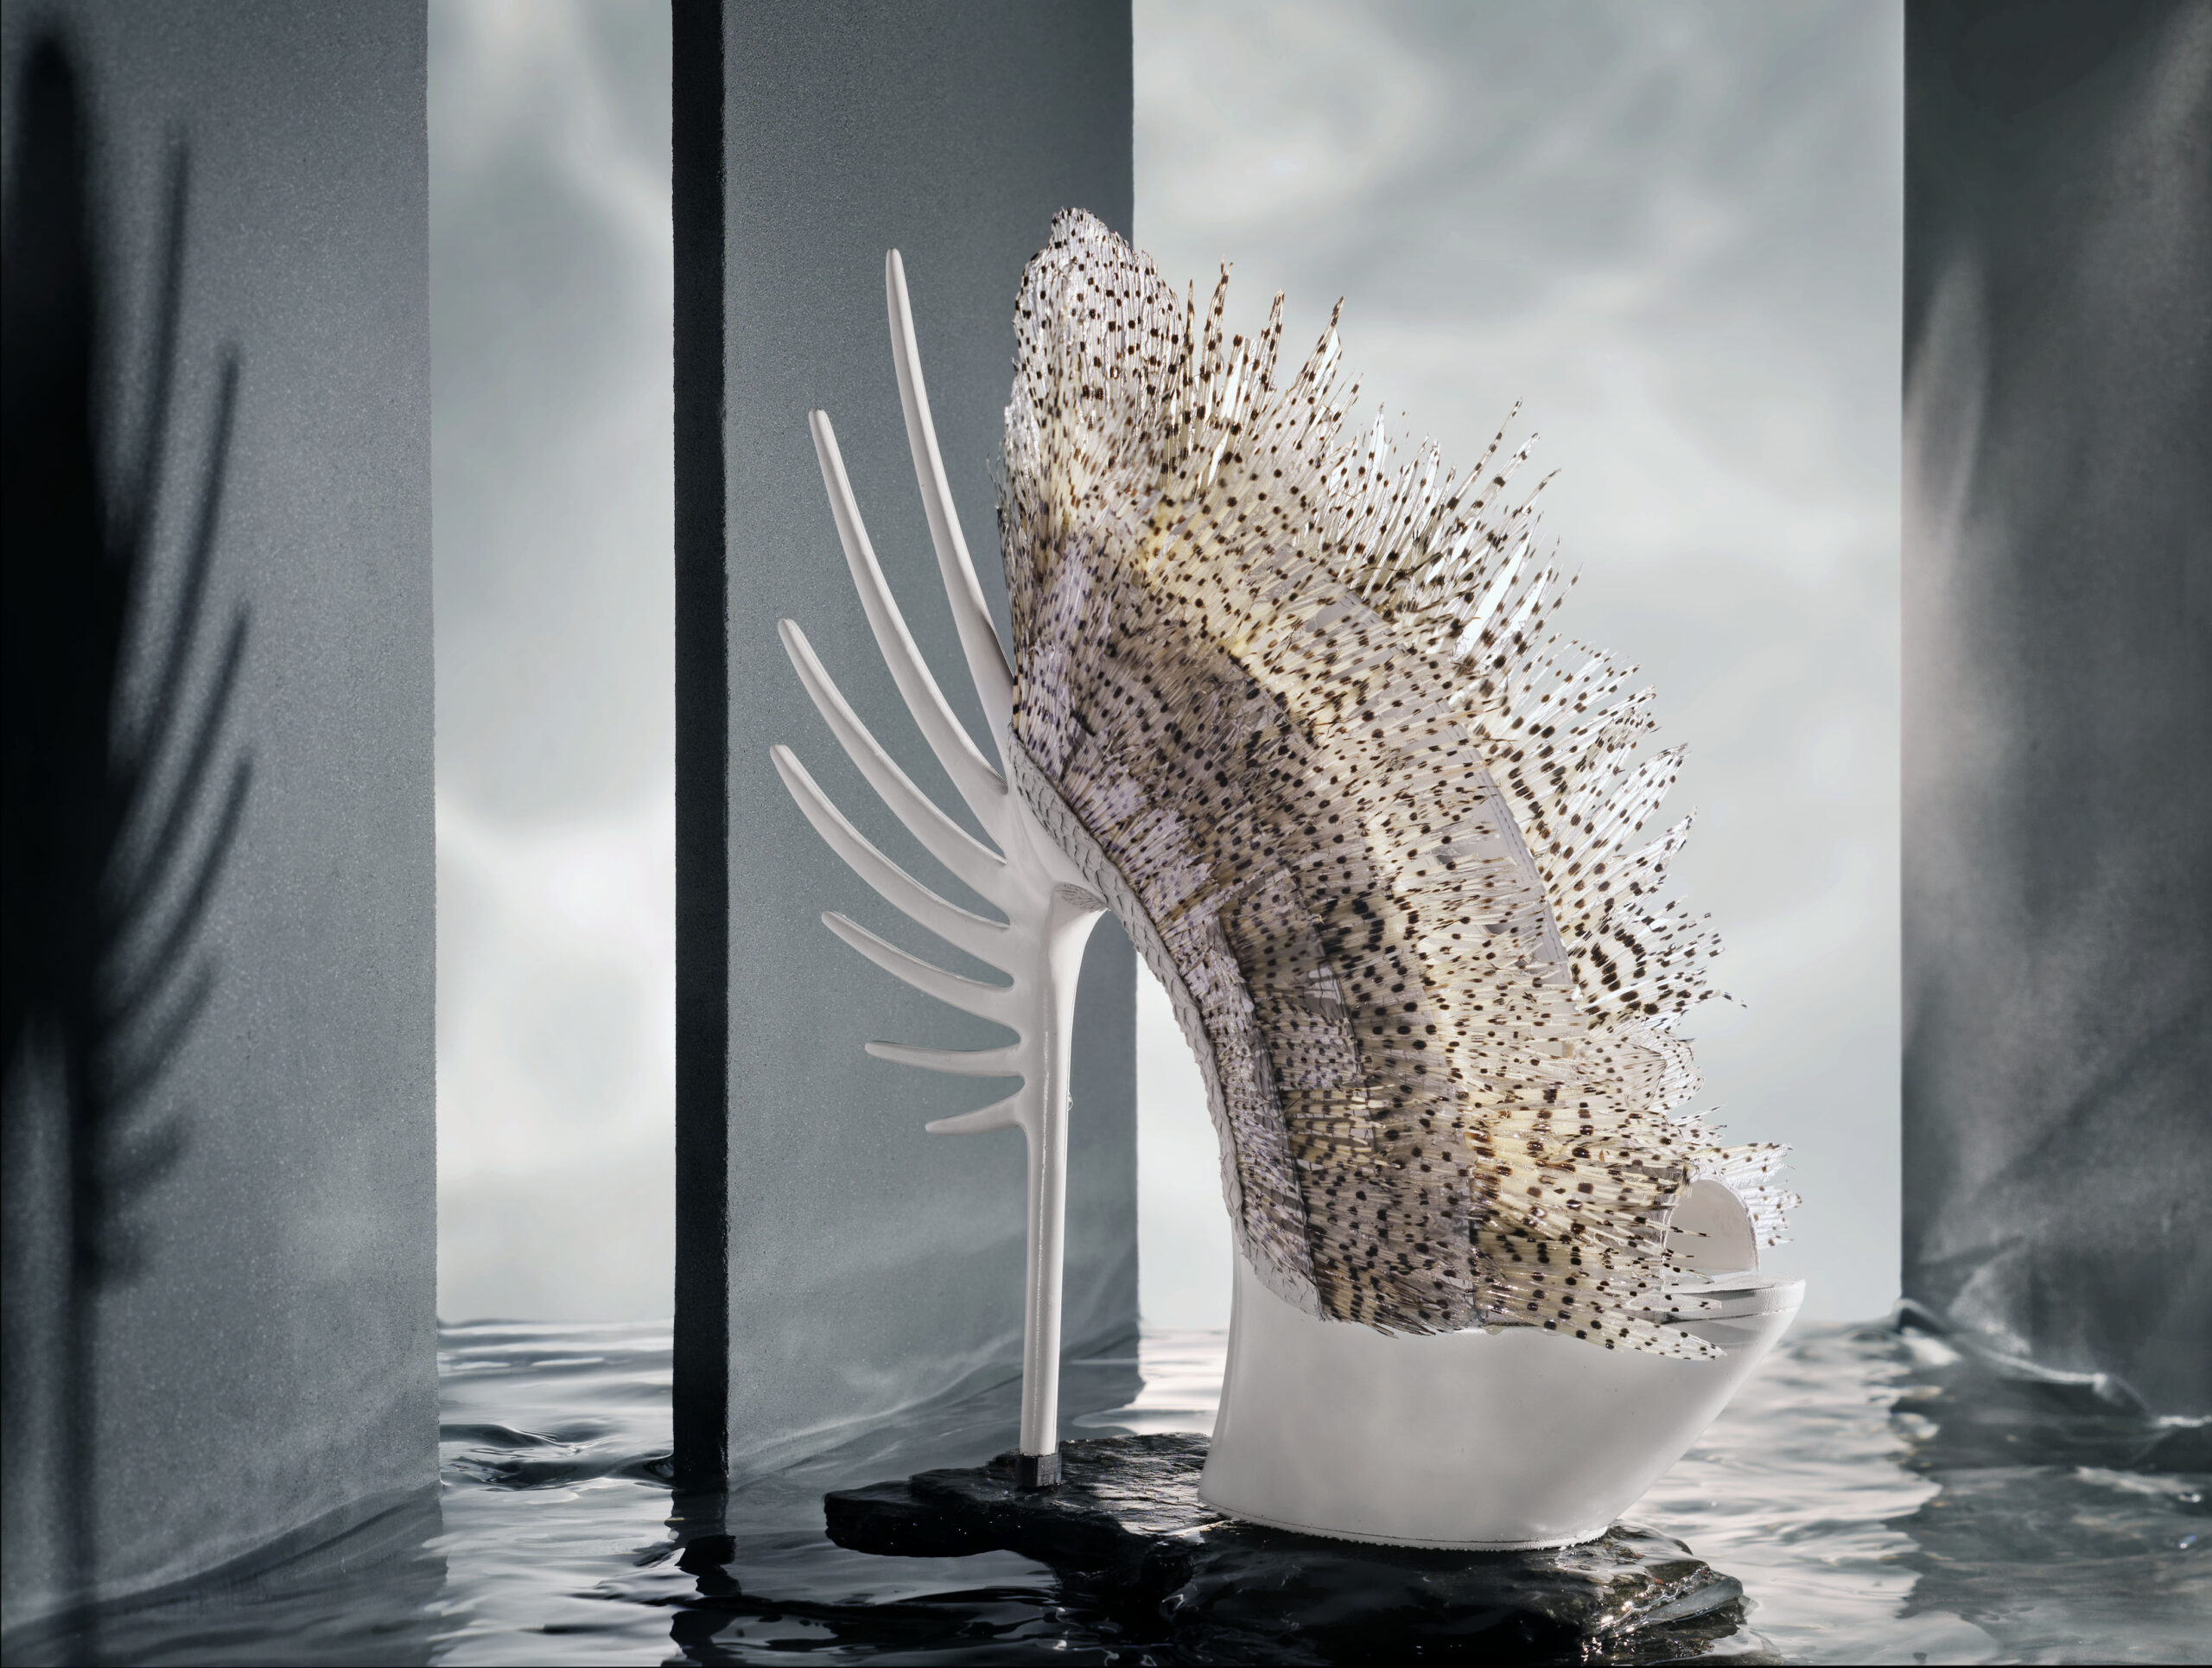 White Lionfish shoe, design van Quint Verhaart, fotografie door STUDIO_M